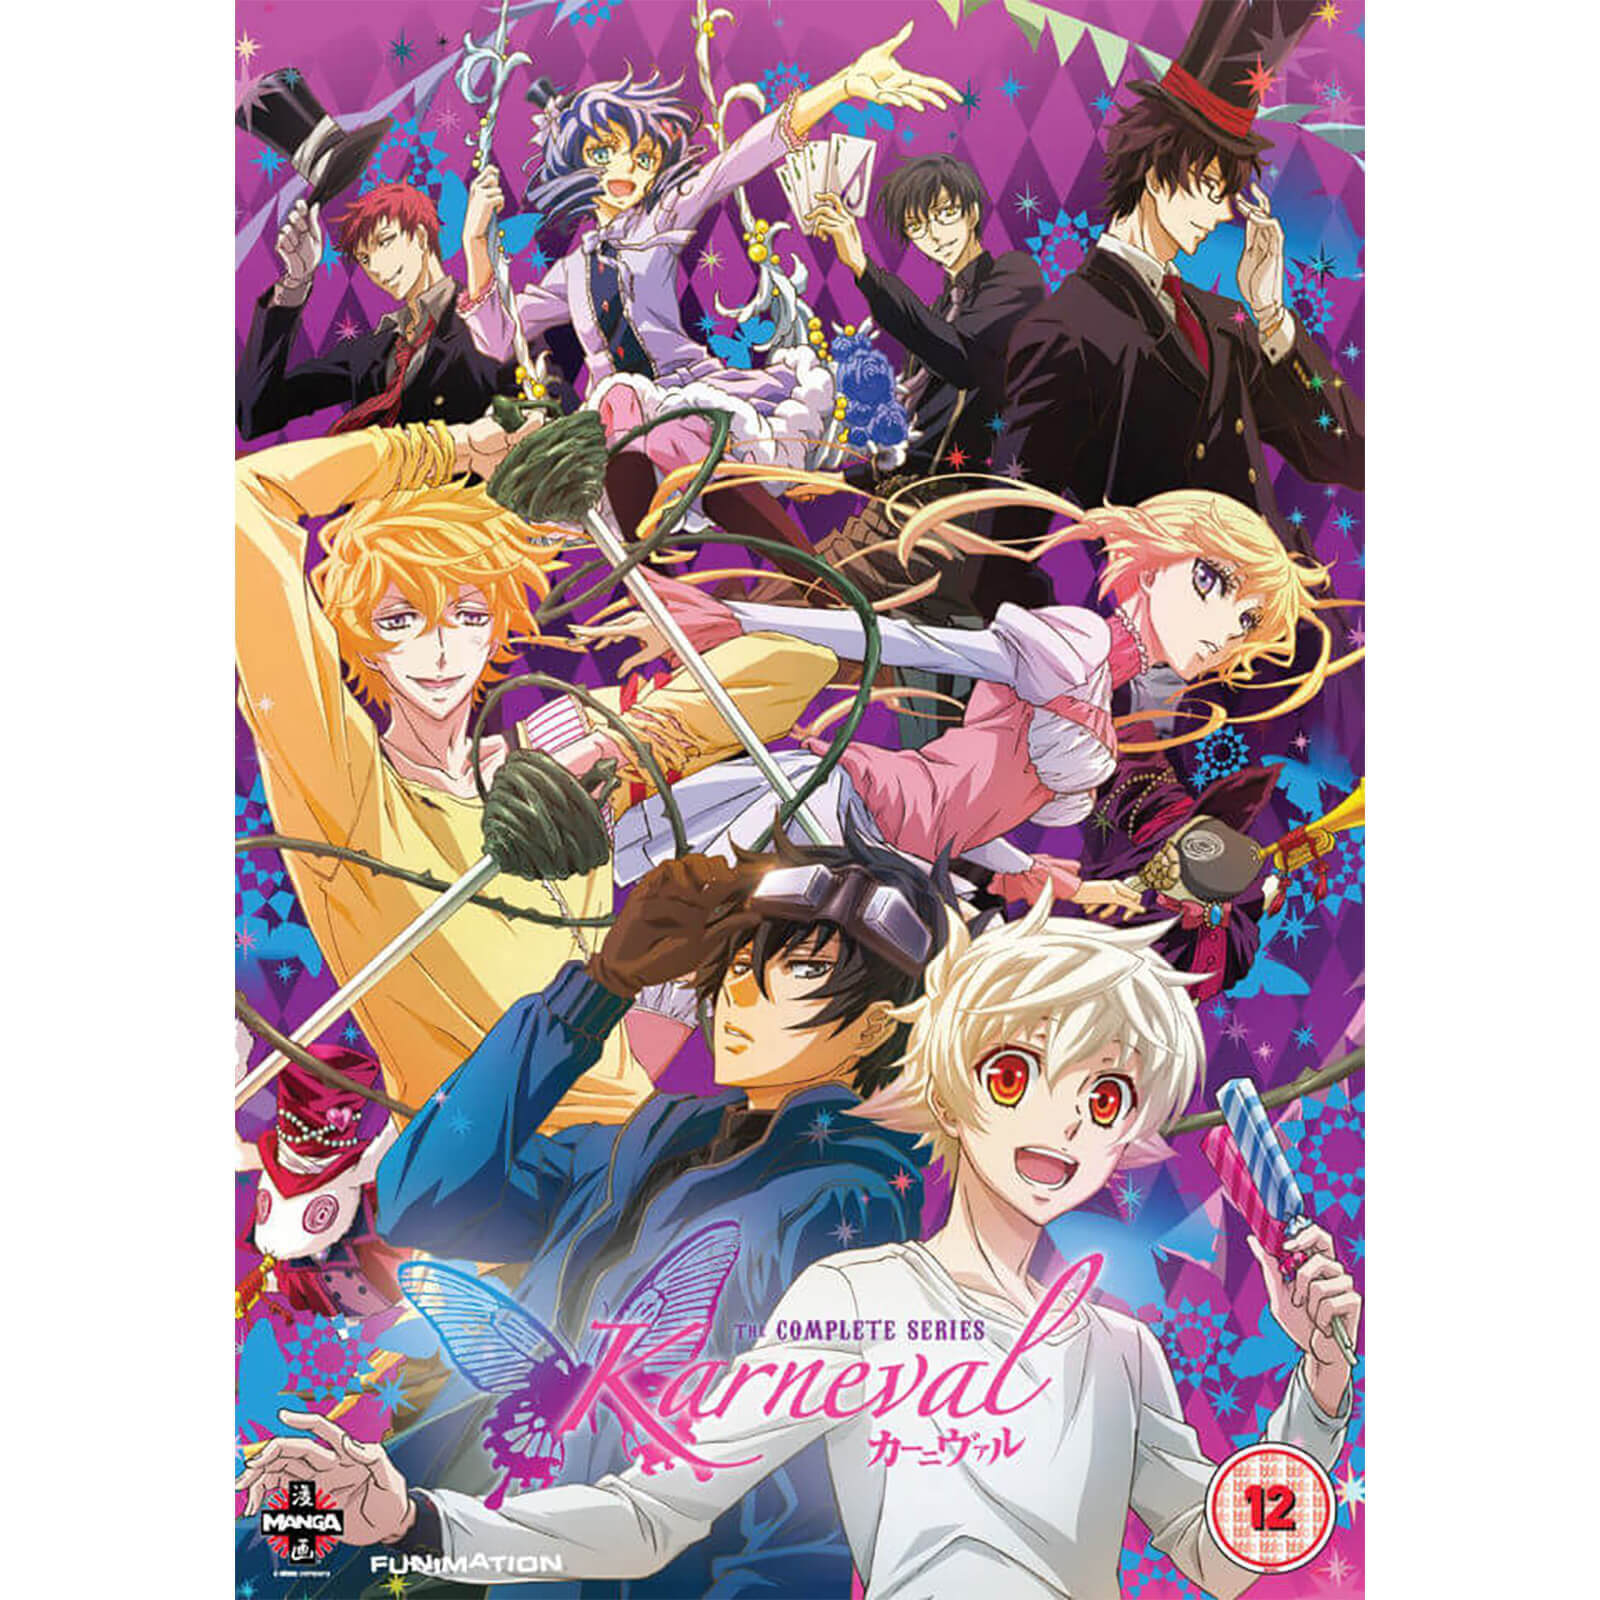 Karneval - The Complete Series Collection von Manga Entertainment